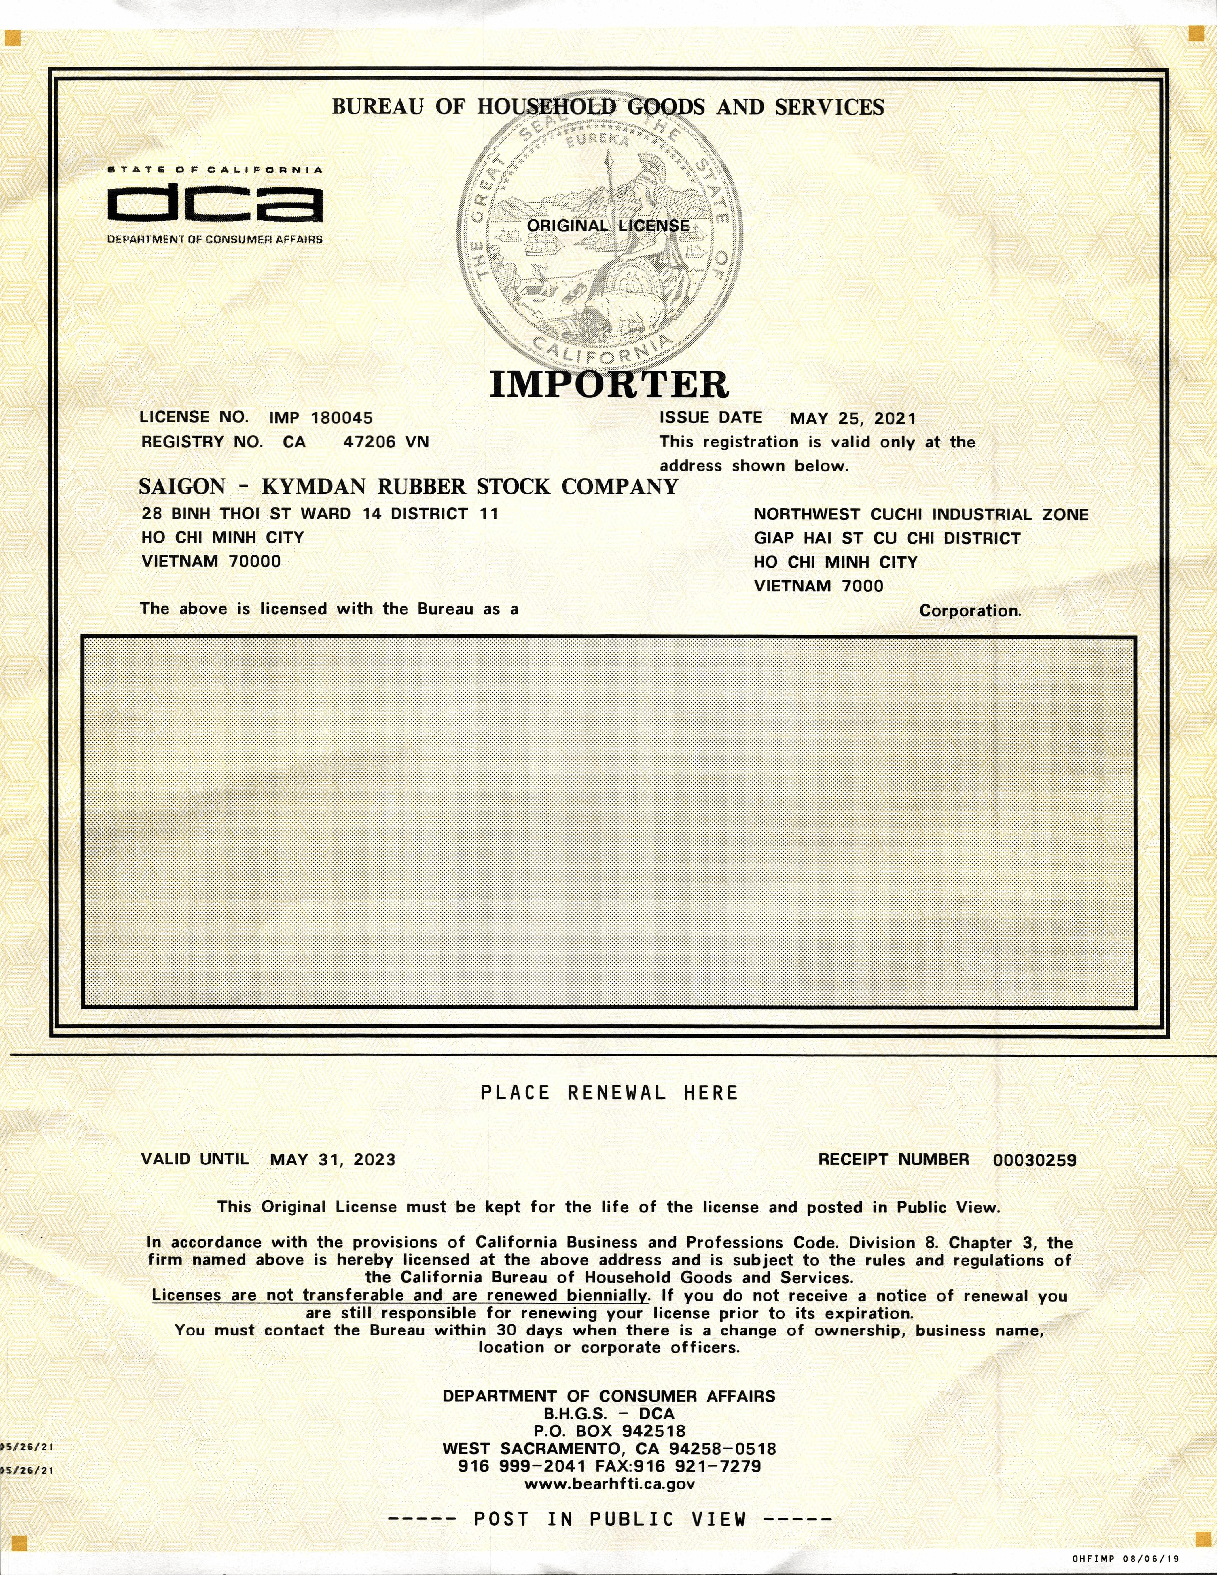 Certificate of Bureau of Electronic and Appliance Repair, Home Furnishings and Thermal Insulation, California, USA